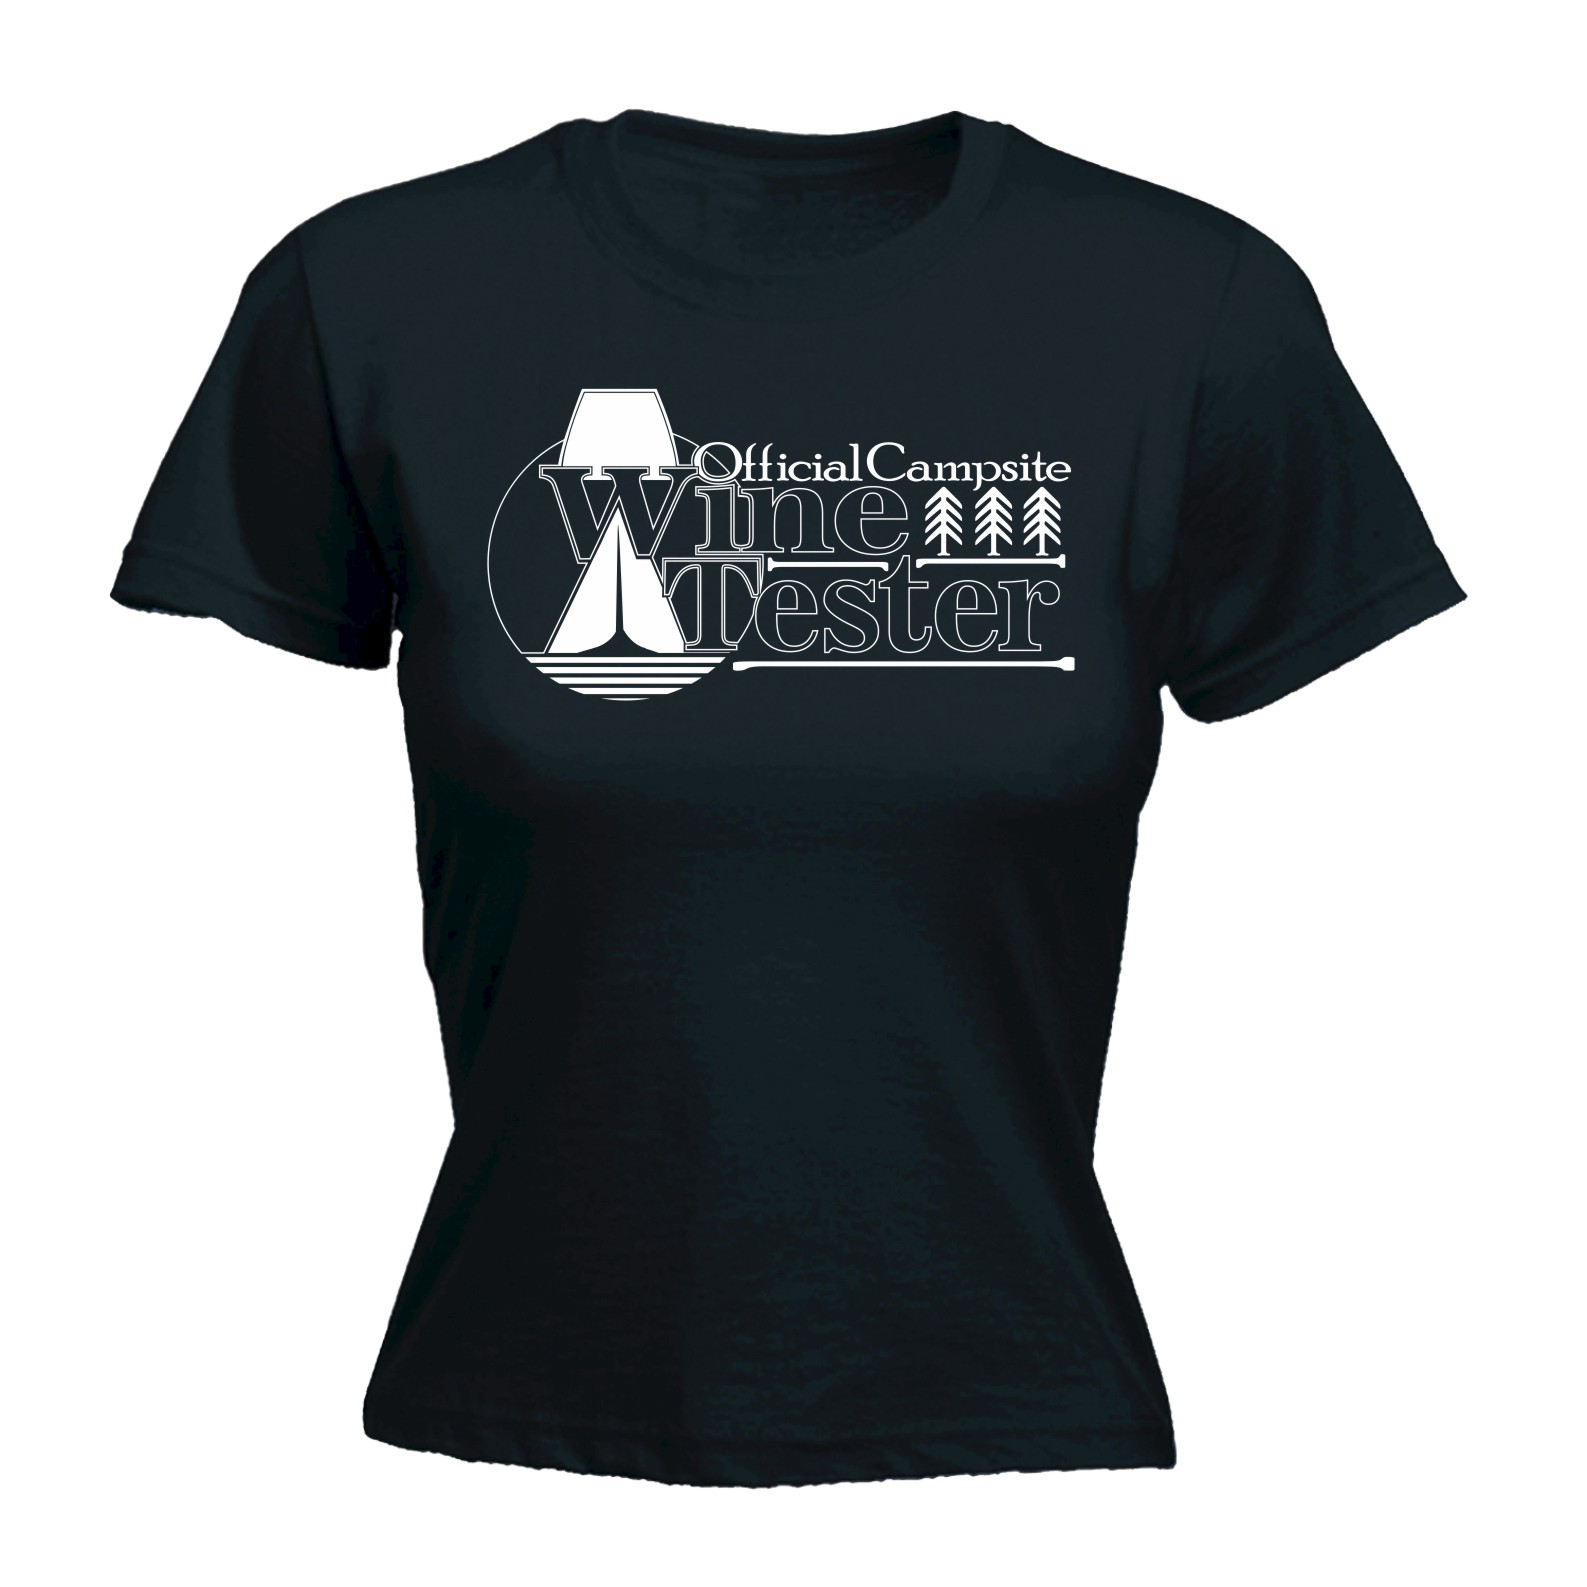 Womens-Official-Campsite-Wine-Tester-Funny-Joke-Camping-FITTED-T-SHIRT-Birthday